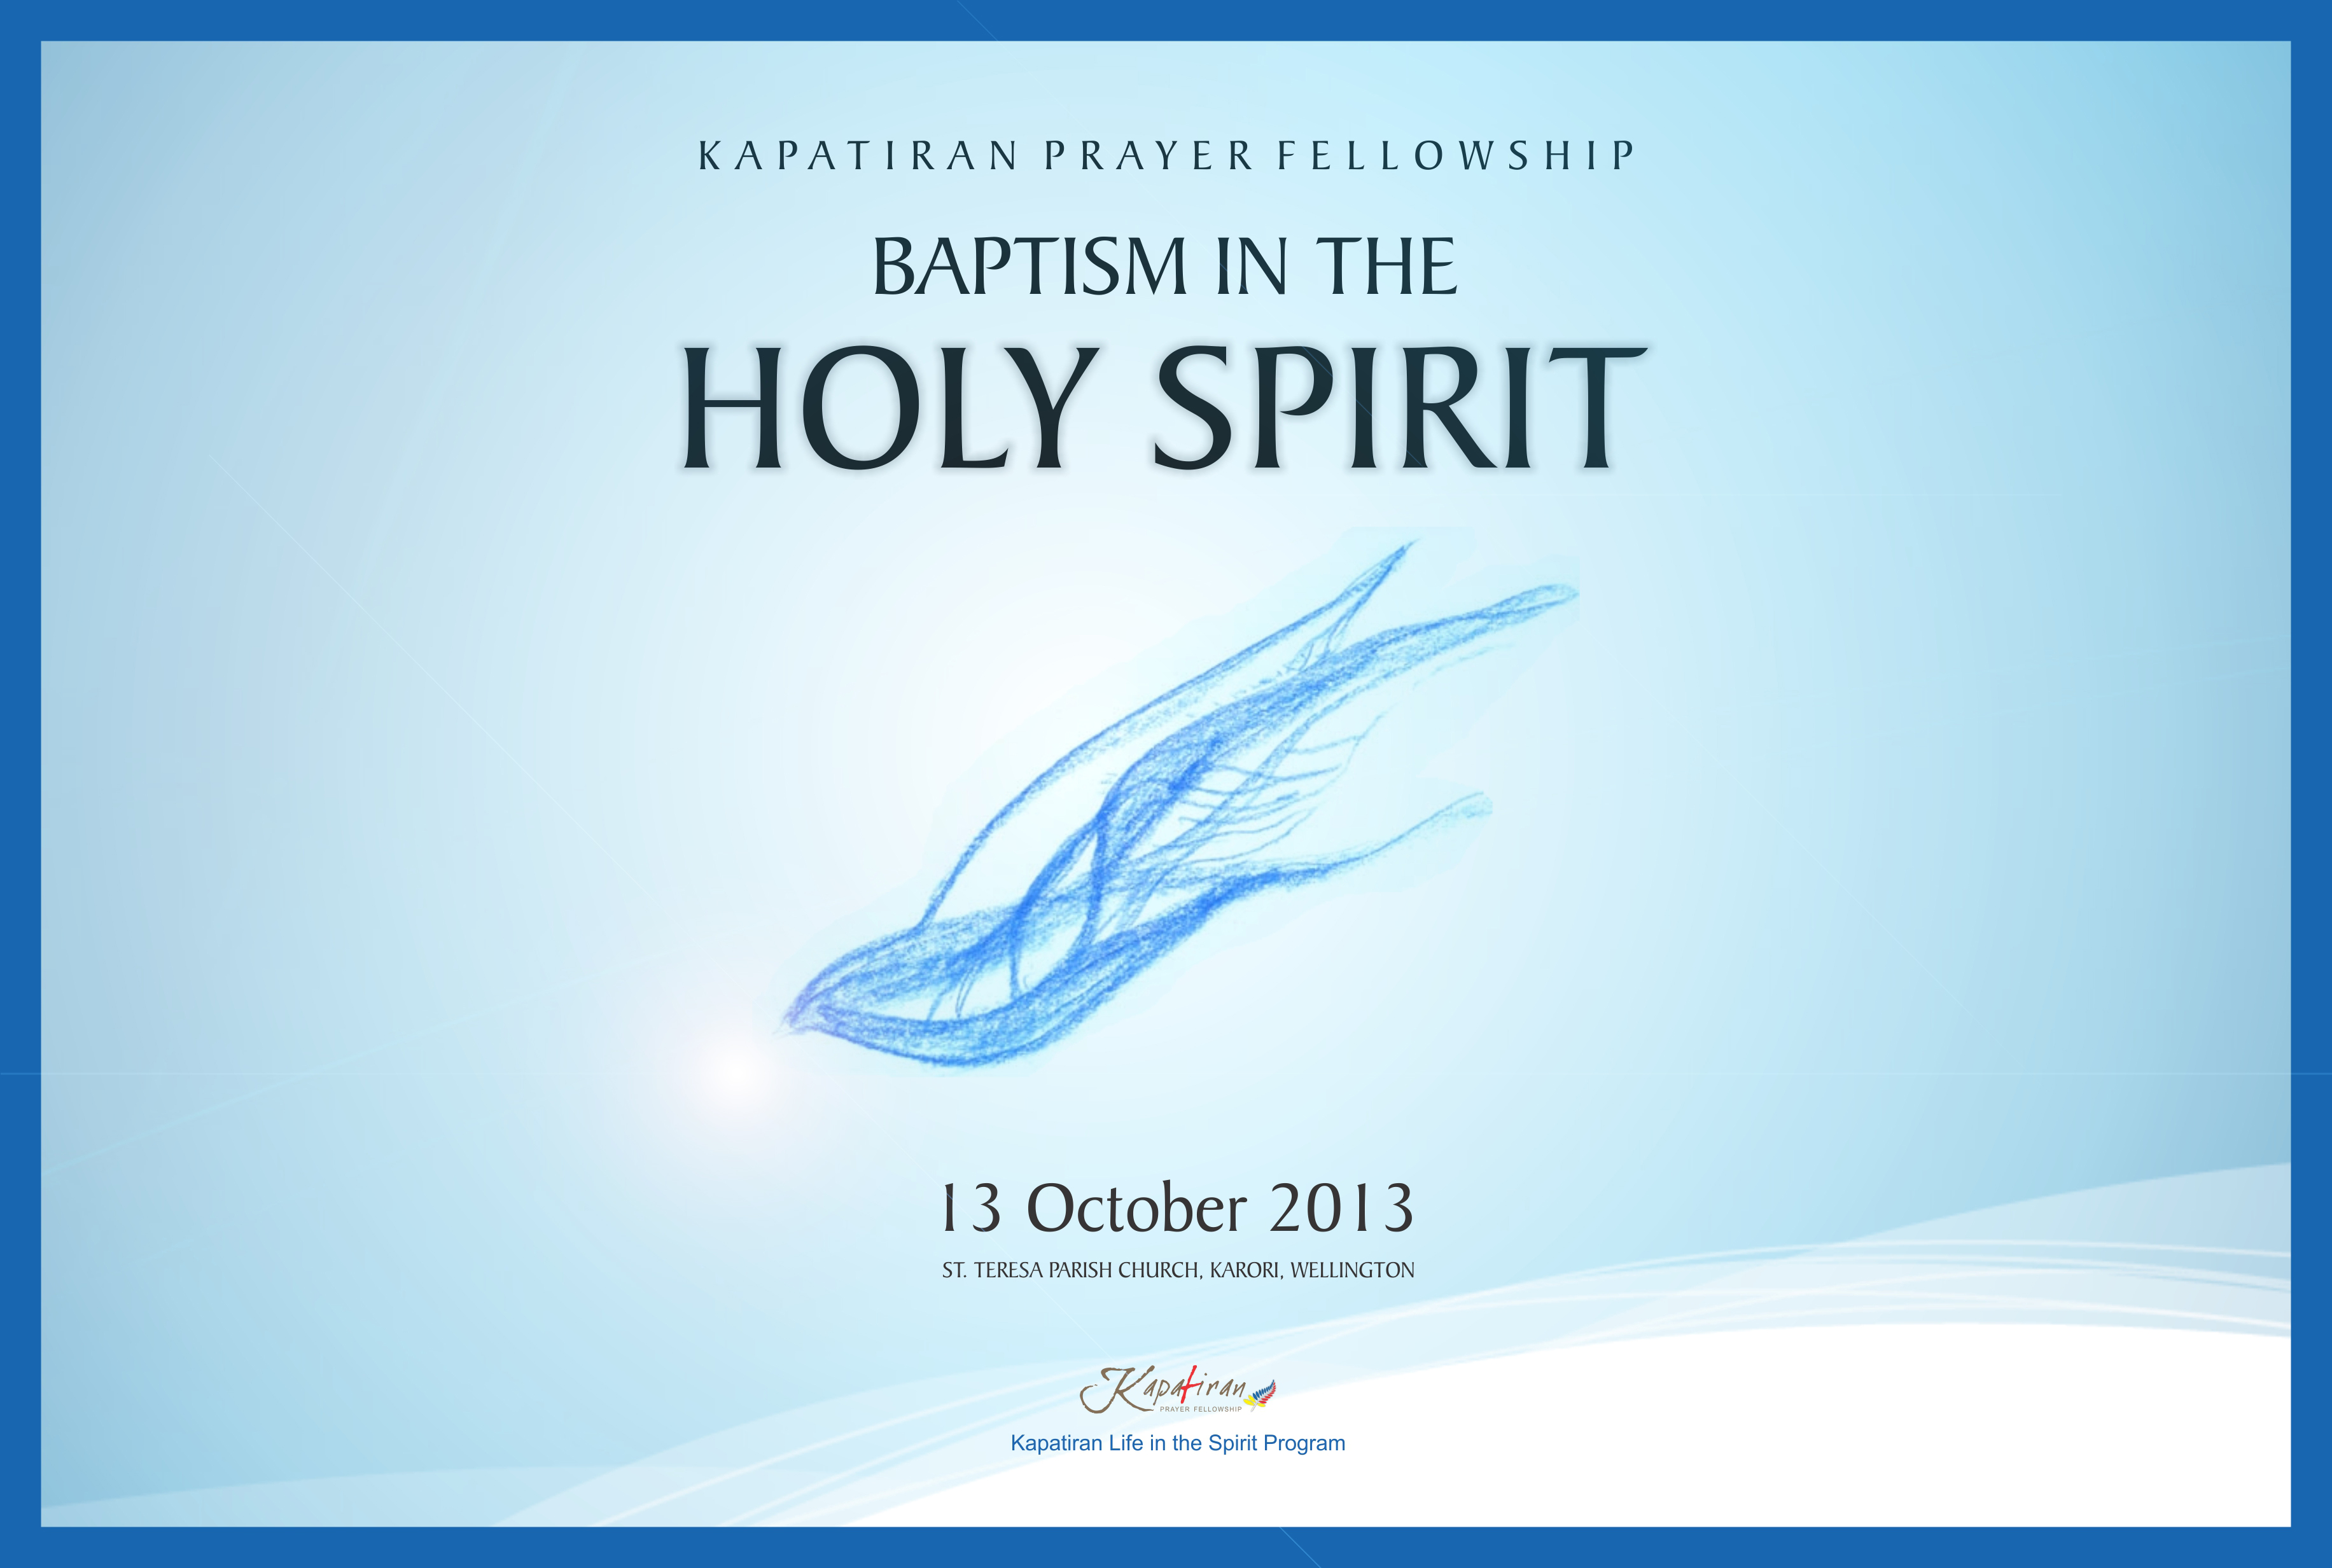 holy spirit baptism Receive the baptism in the holy spirit just as you received jesus—by faith, by believing god's word you are his child and he is your father god is poised and ready to baptize you in his holy spirit when you ask him.